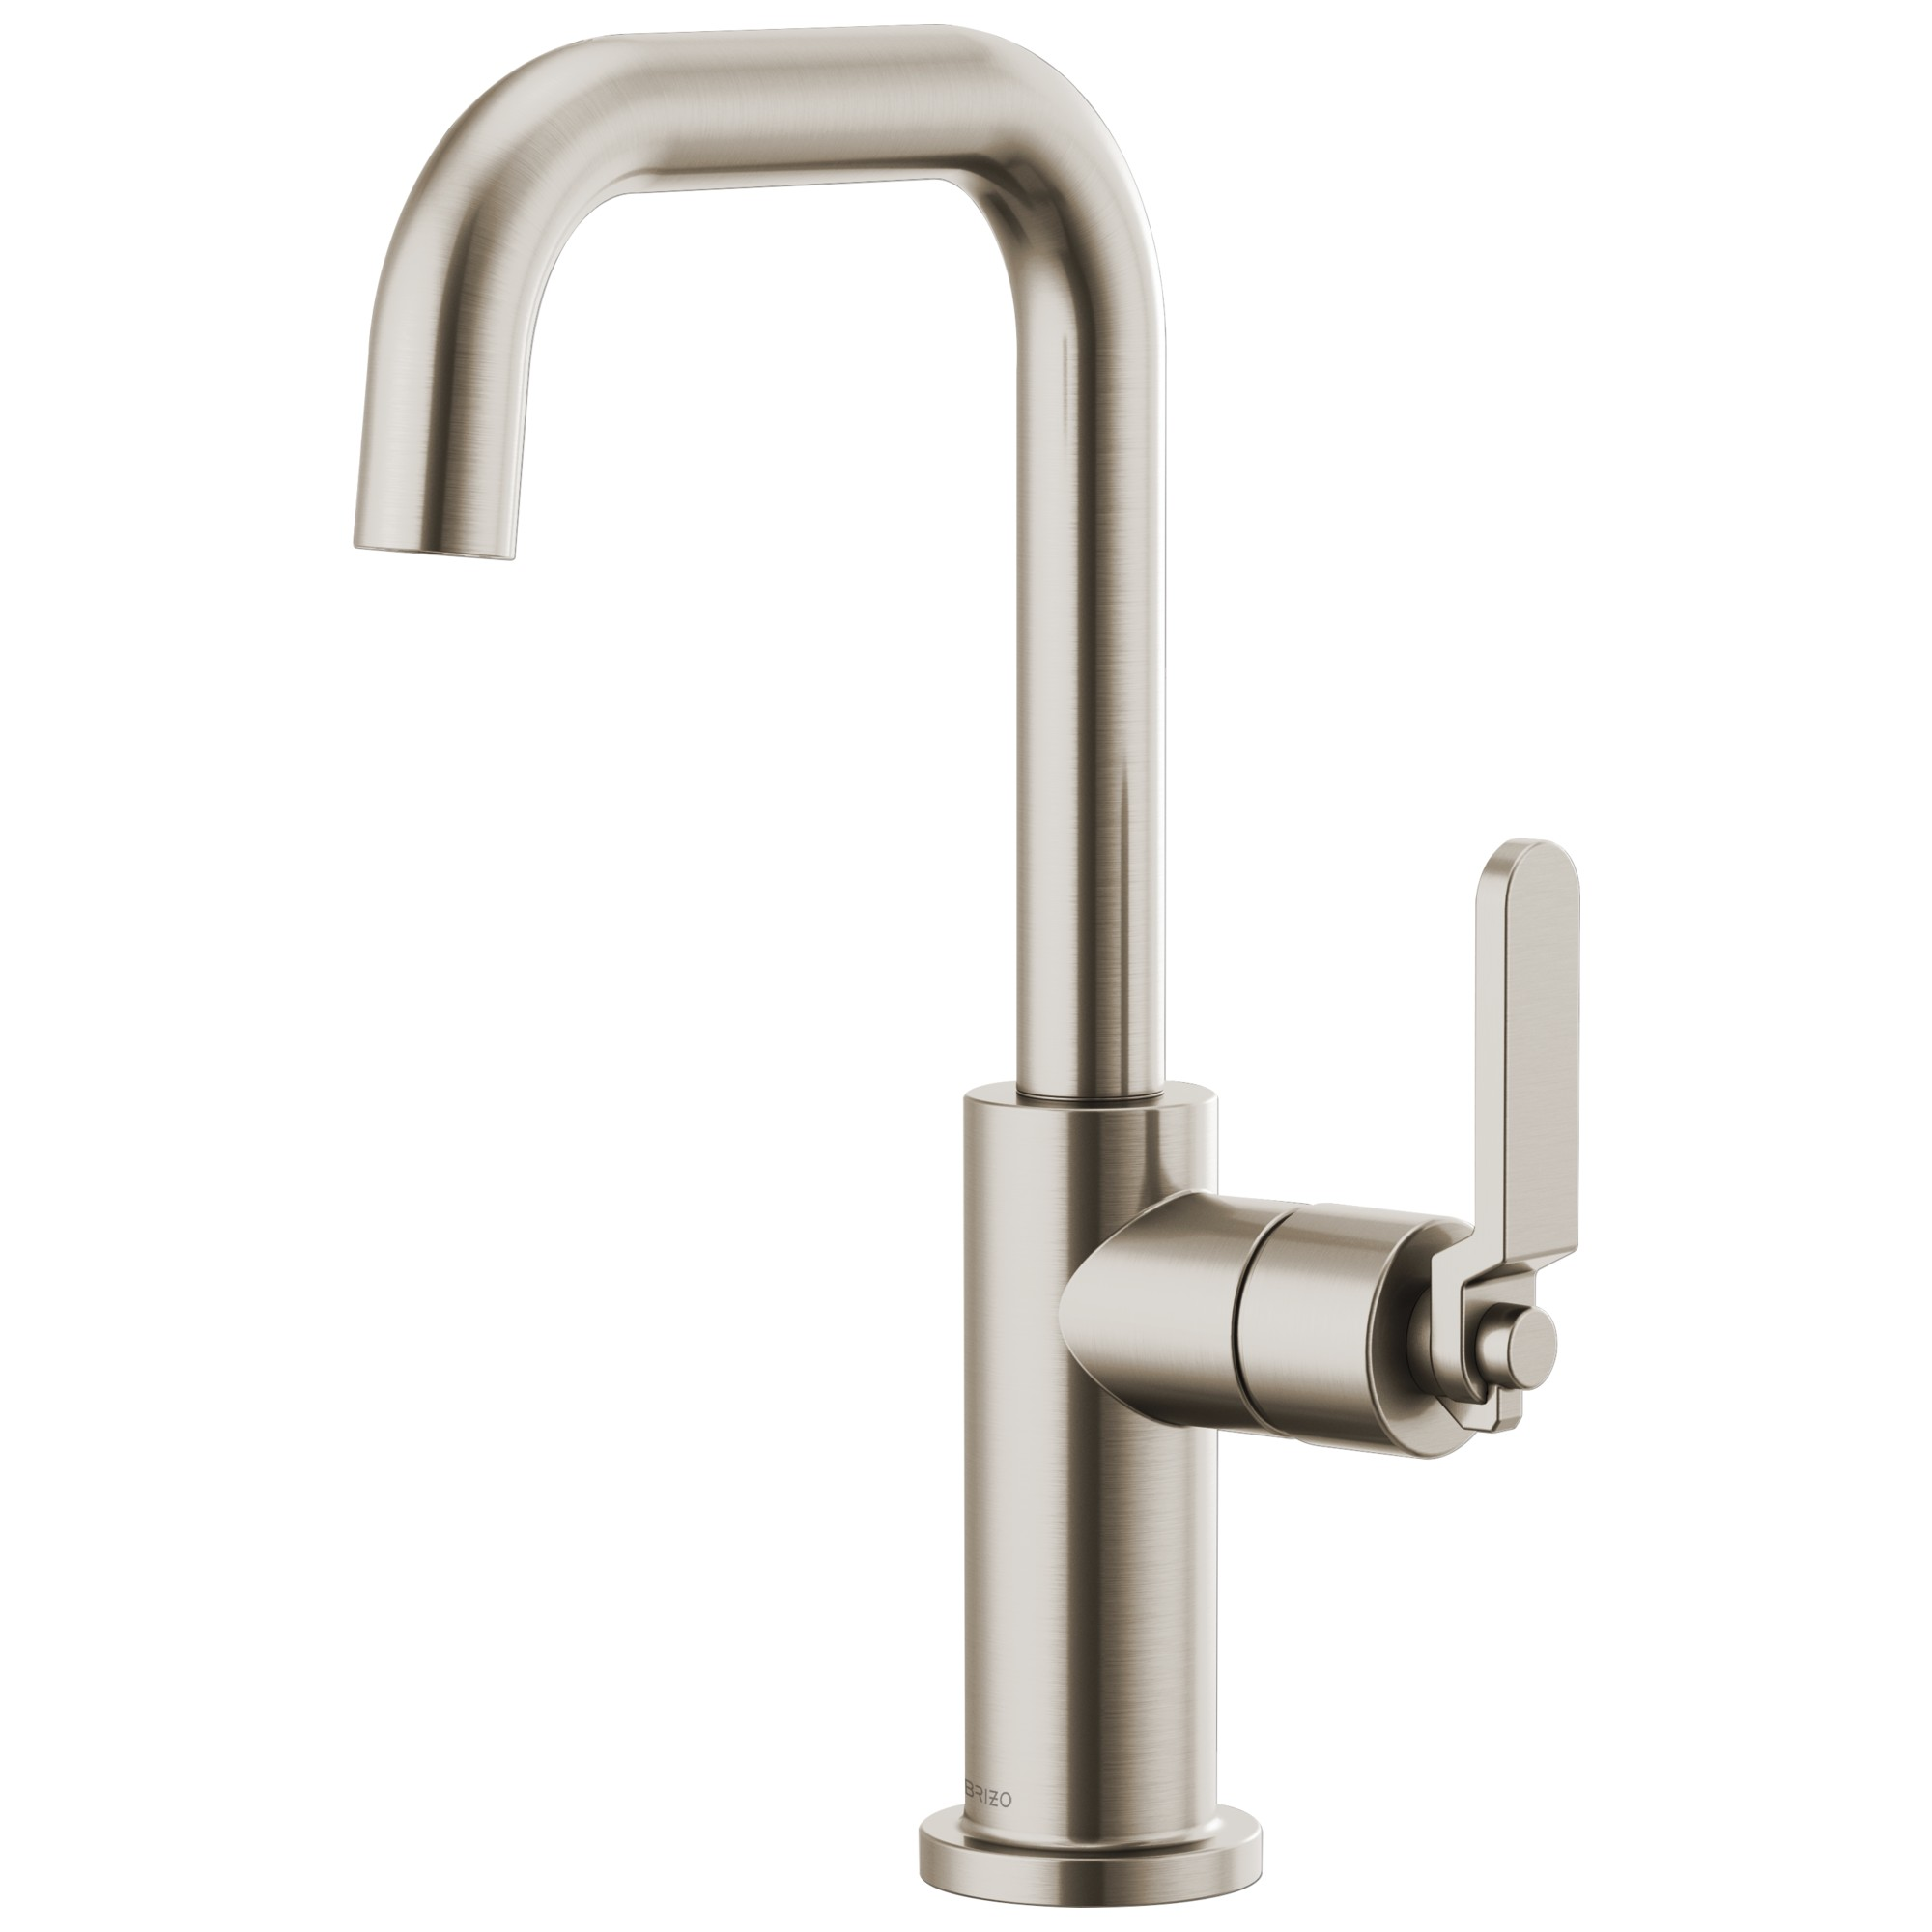 Brizo 61054LF-SS Litze Bar Faucet with Square Spout and Industrial Handle - Stainless